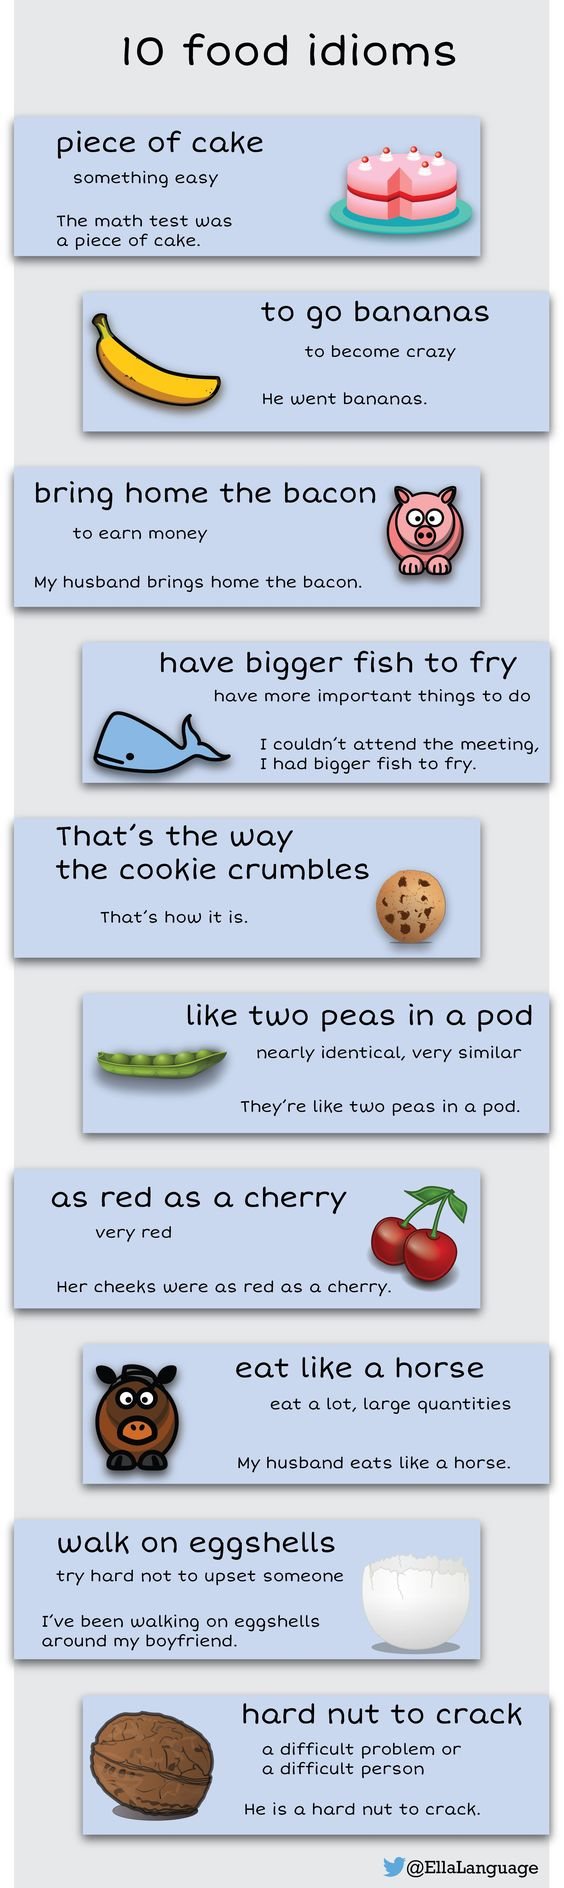 10 food idioms esl idioms esl infographics pinterest for Cuisine meaning